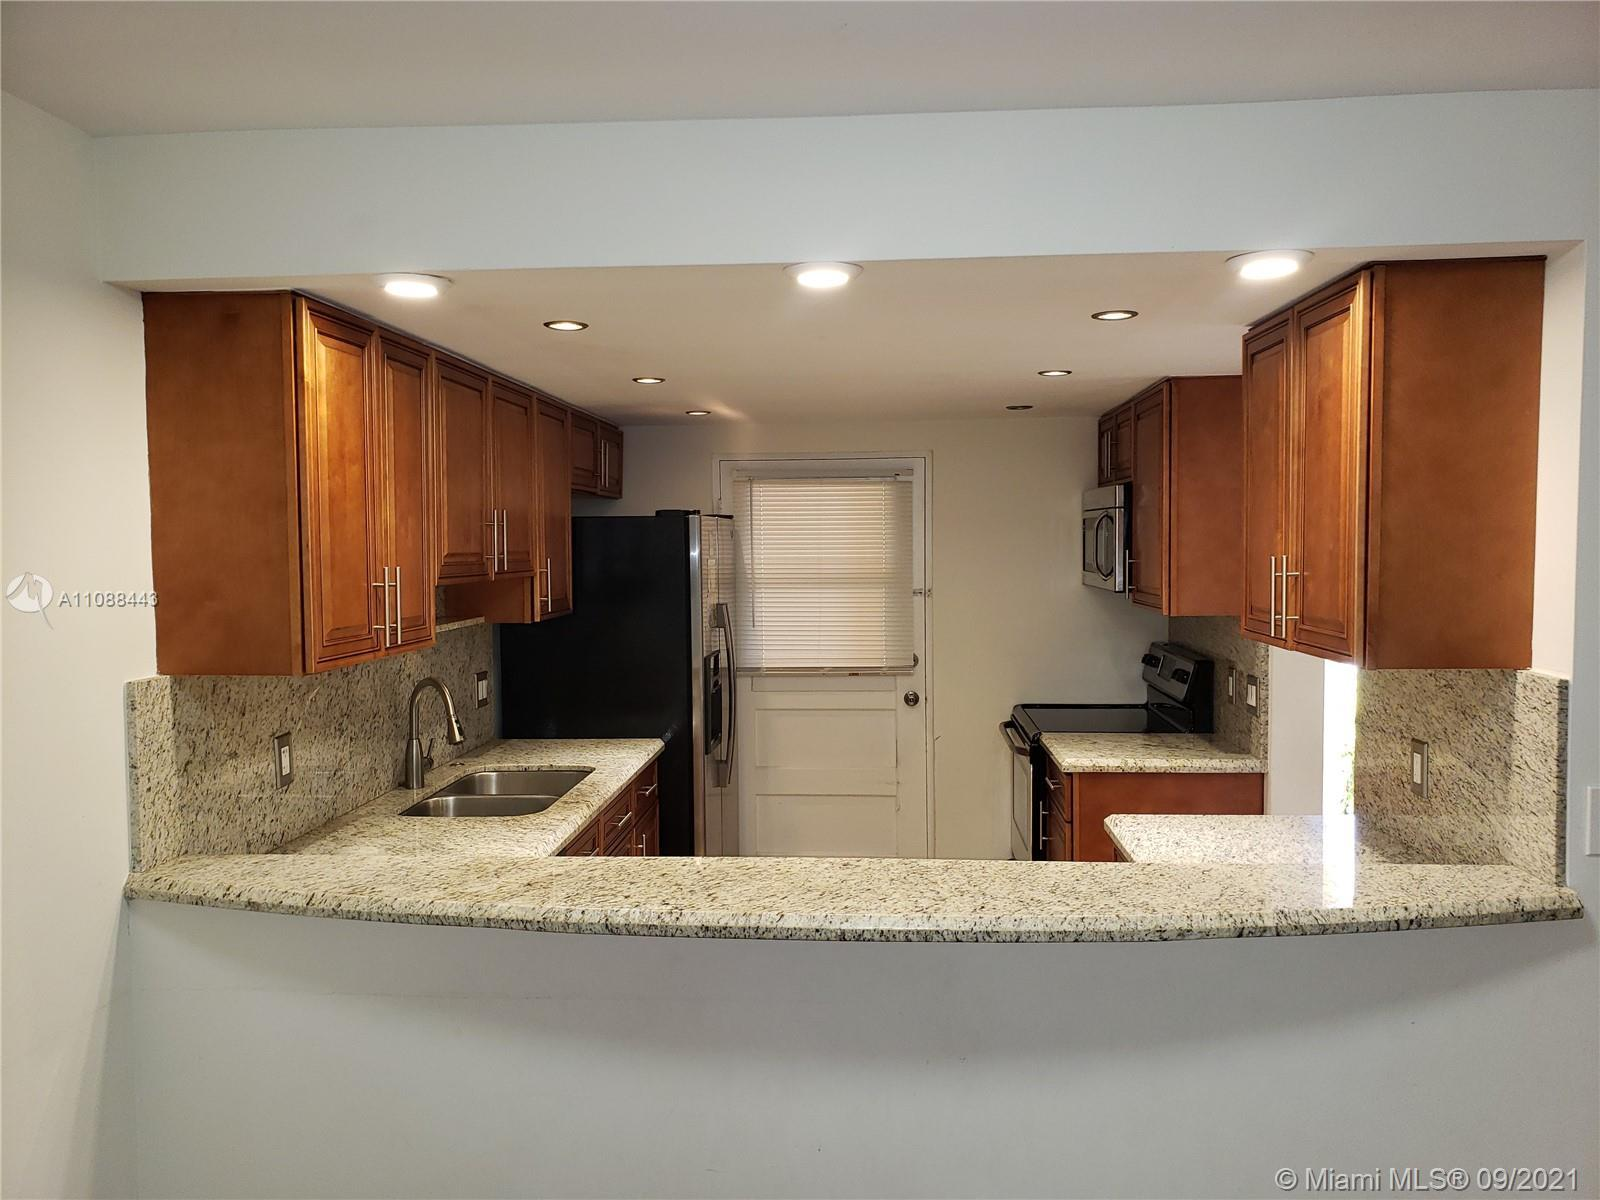 Amazing 2bed/ 2bath plus Den can be use a bedroom #3, Stainless steel appliances, Laminate Wood floo